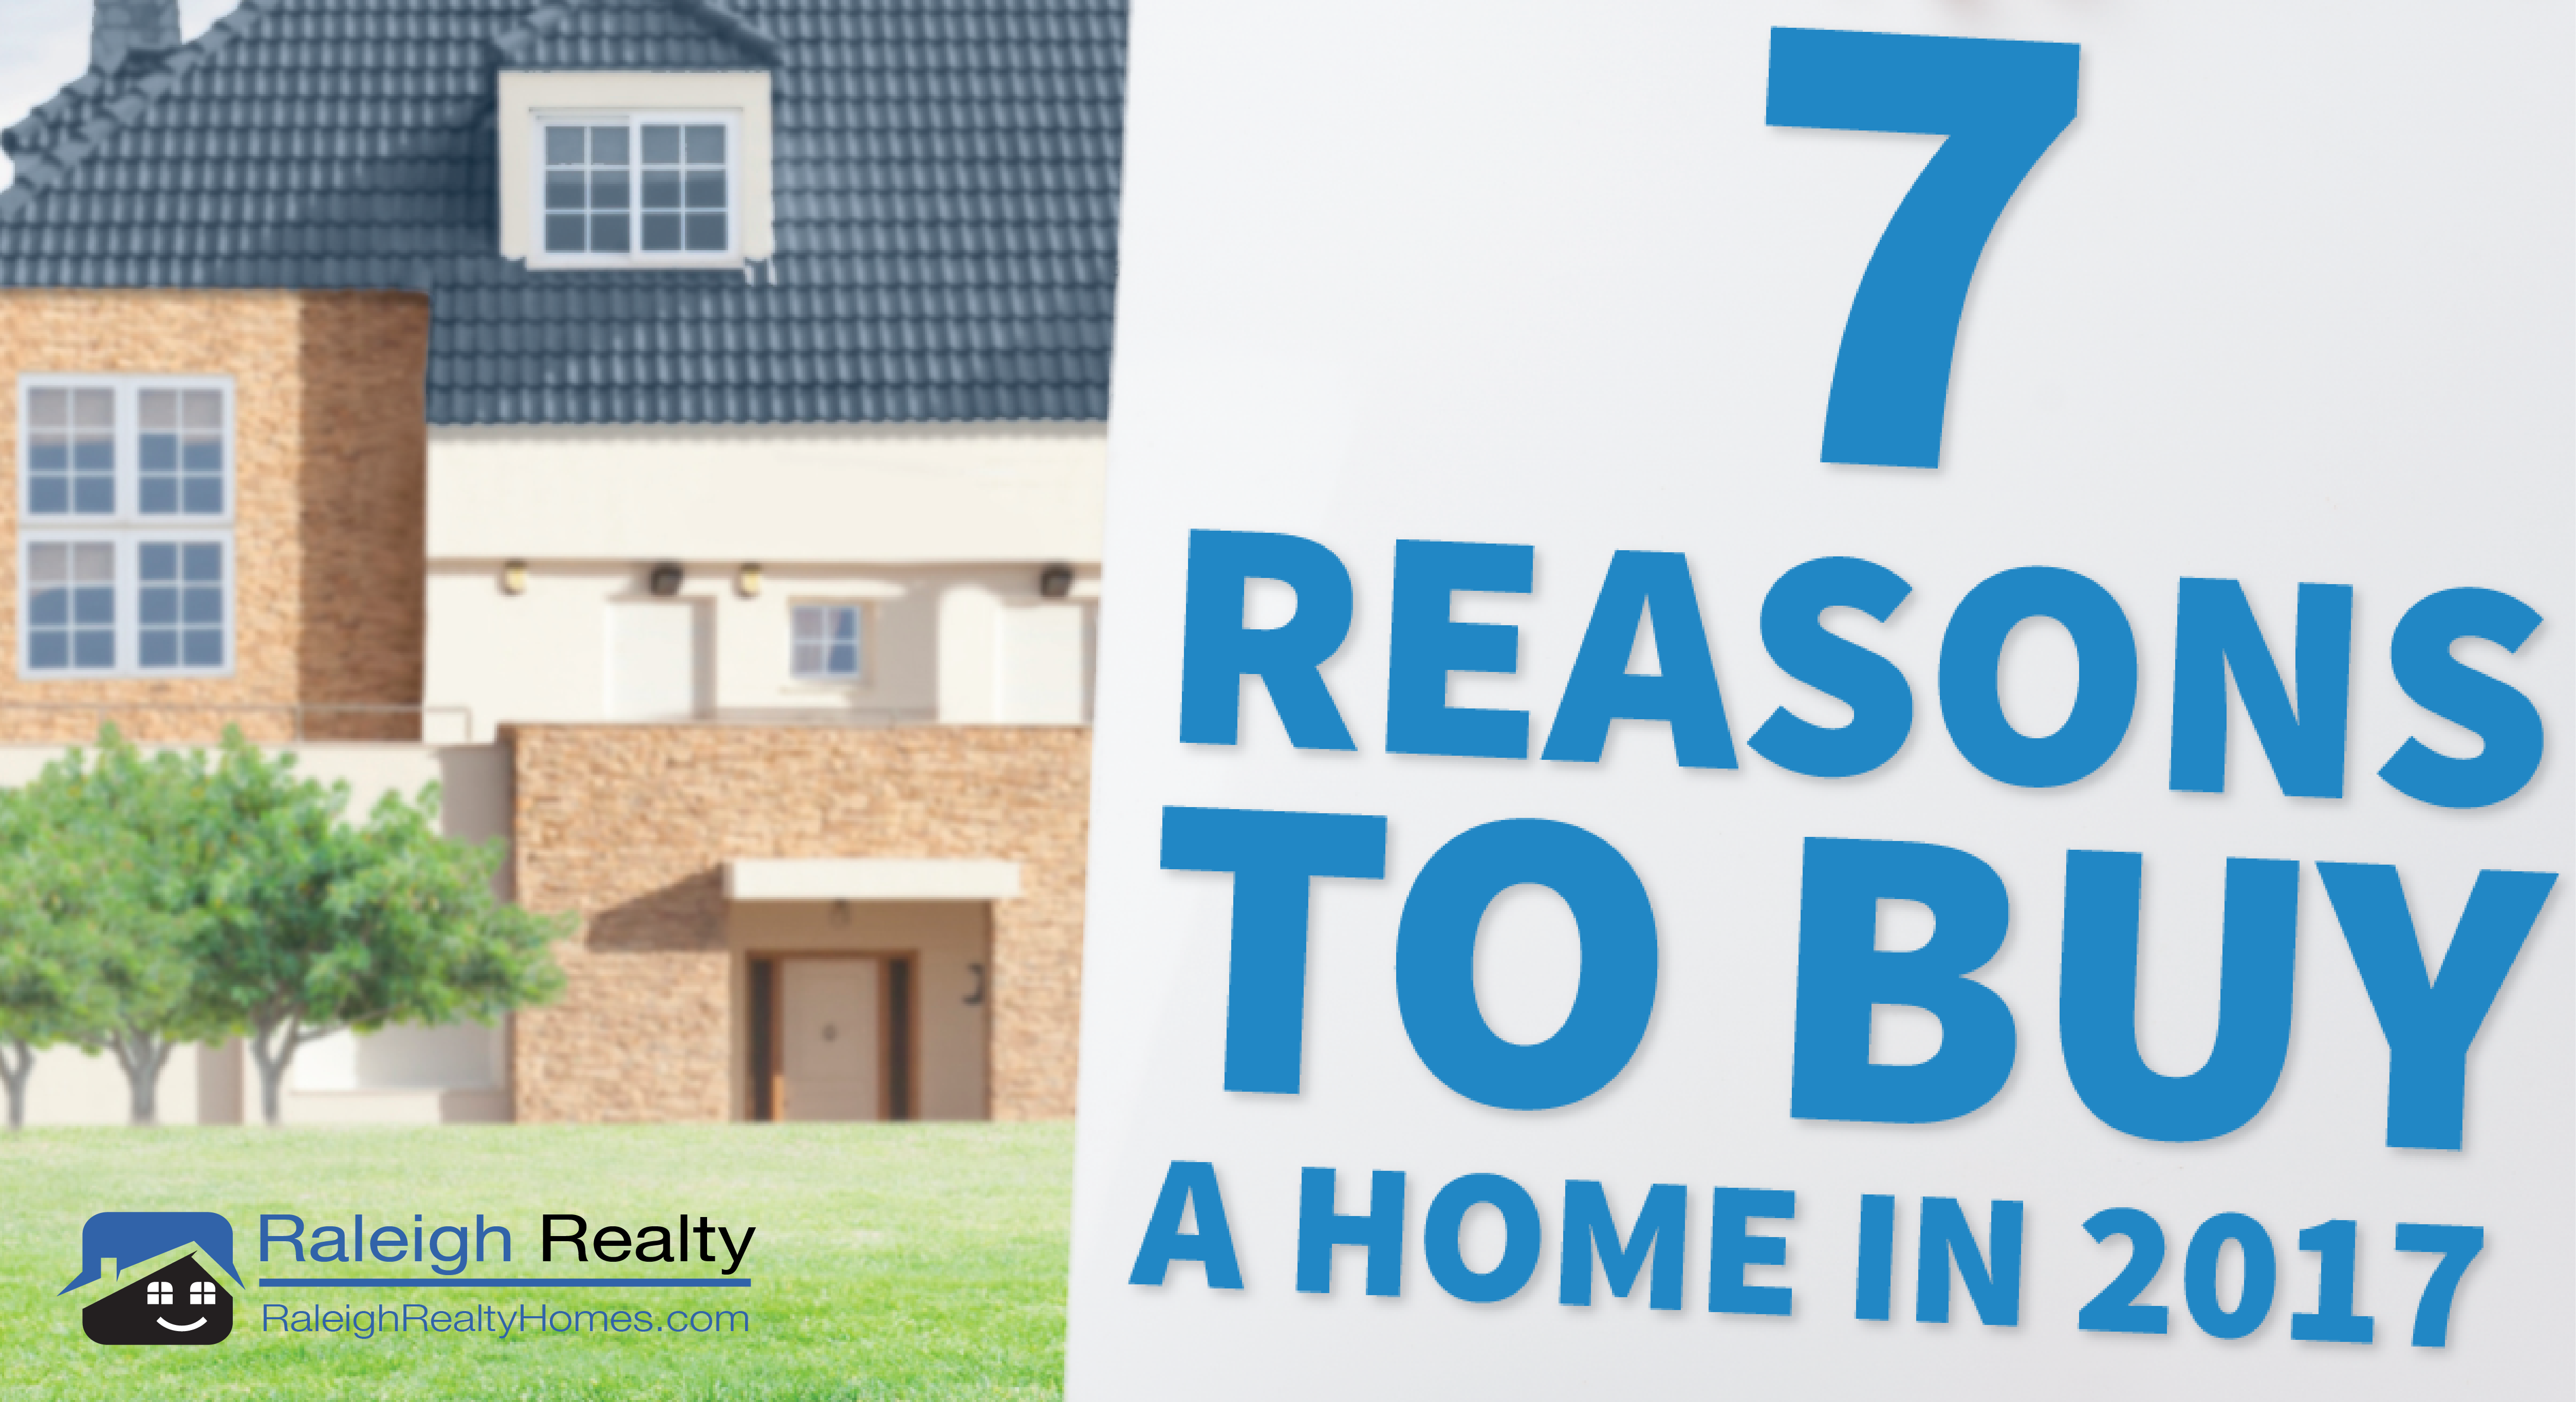 7 surprising reasons to buy a home in 2017